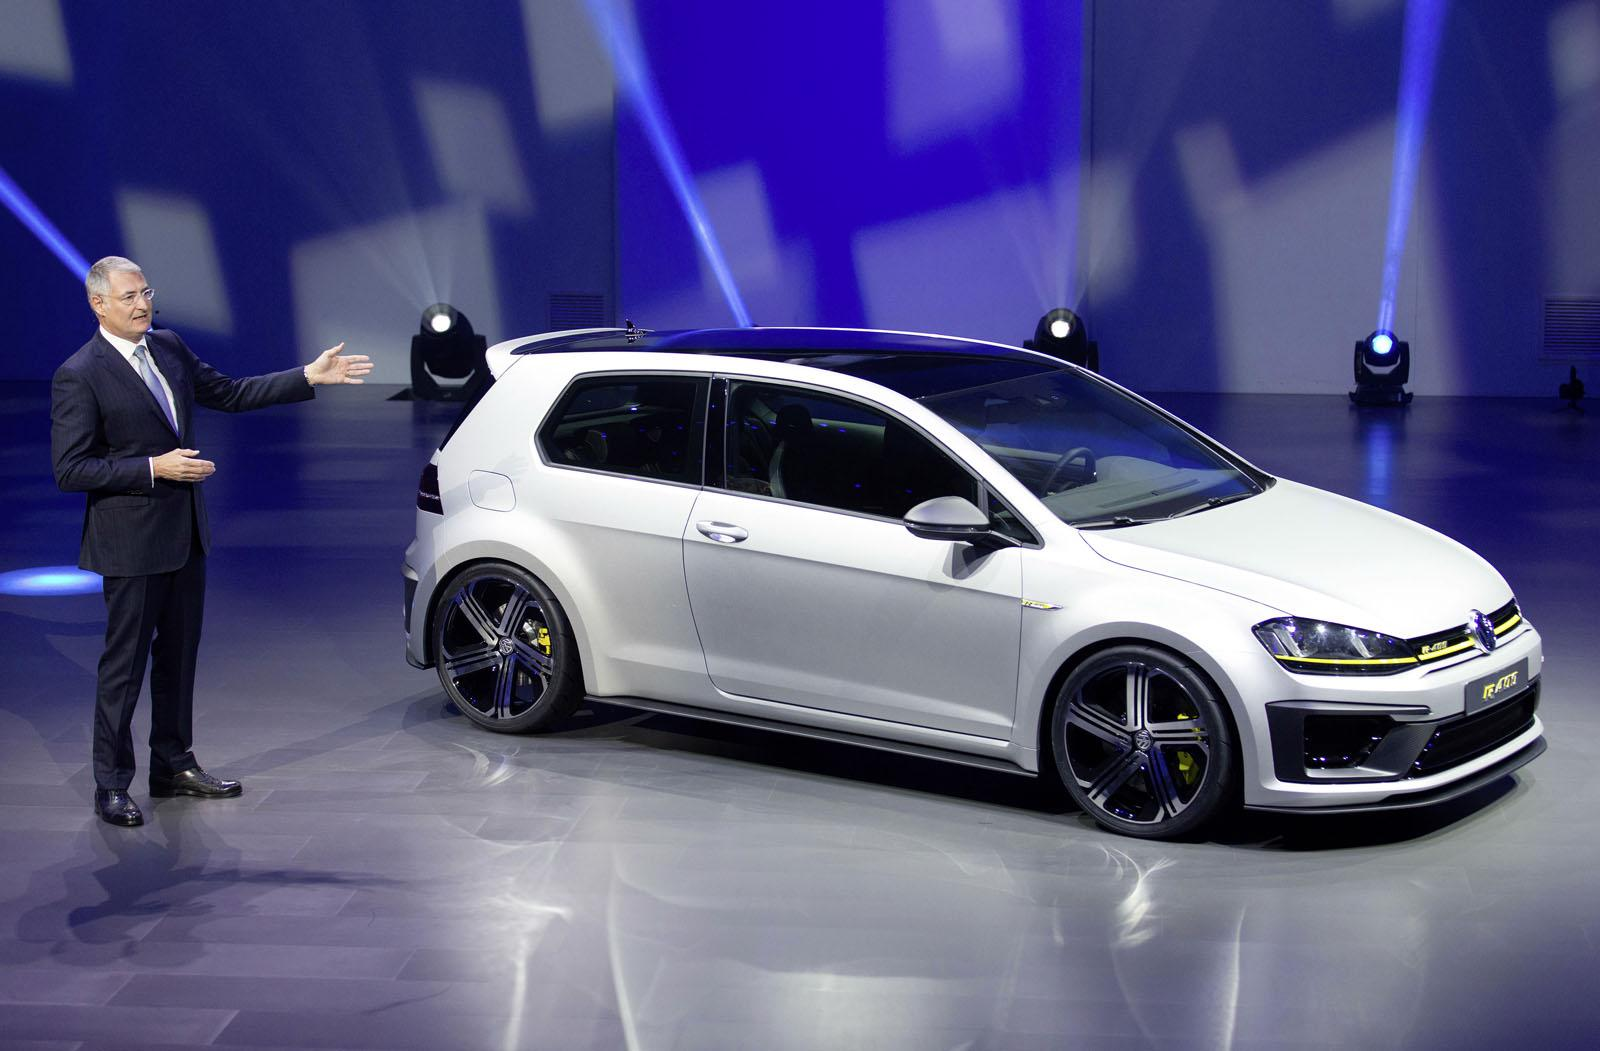 golf r 400 exhaust sound is heard for the first time autoevolution. Black Bedroom Furniture Sets. Home Design Ideas